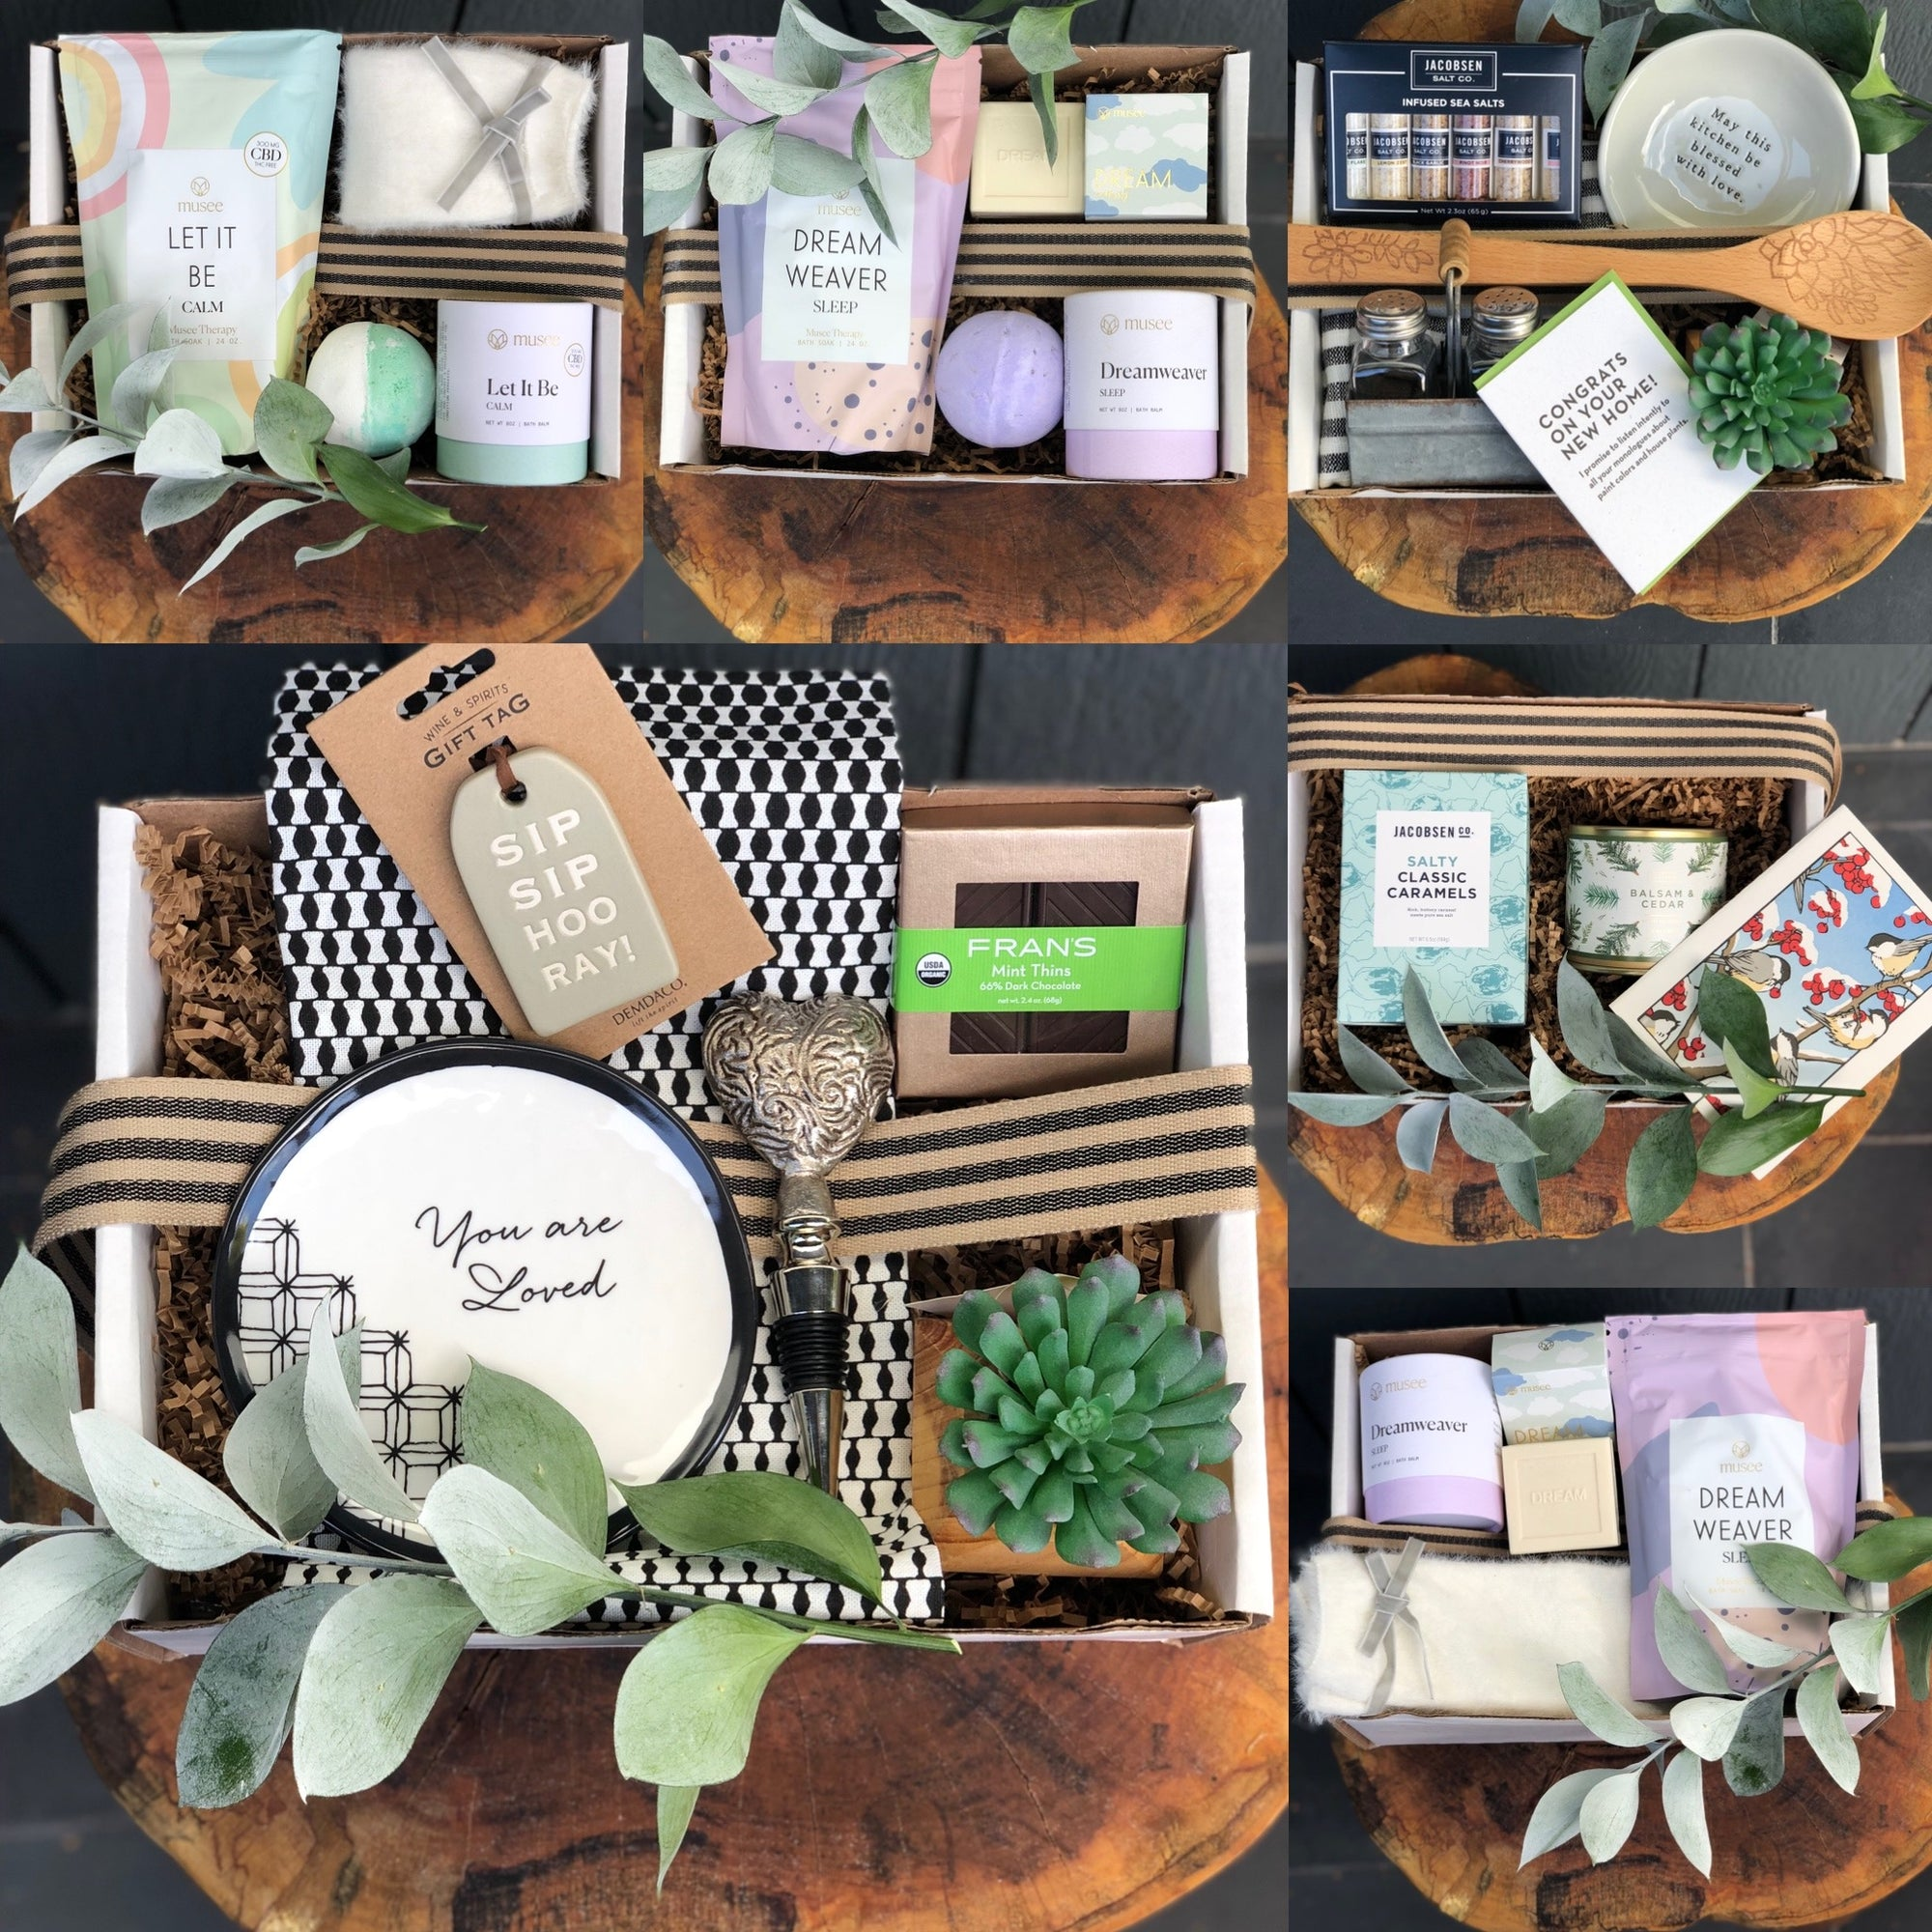 multiple gift items curated in themes foe all special occasions.  New Home, hospitality gifts, holiday candies, scented candles.  All a beautiful selection of locally made chocolates and bath & body for shower gifts in amazing scents like lavender.